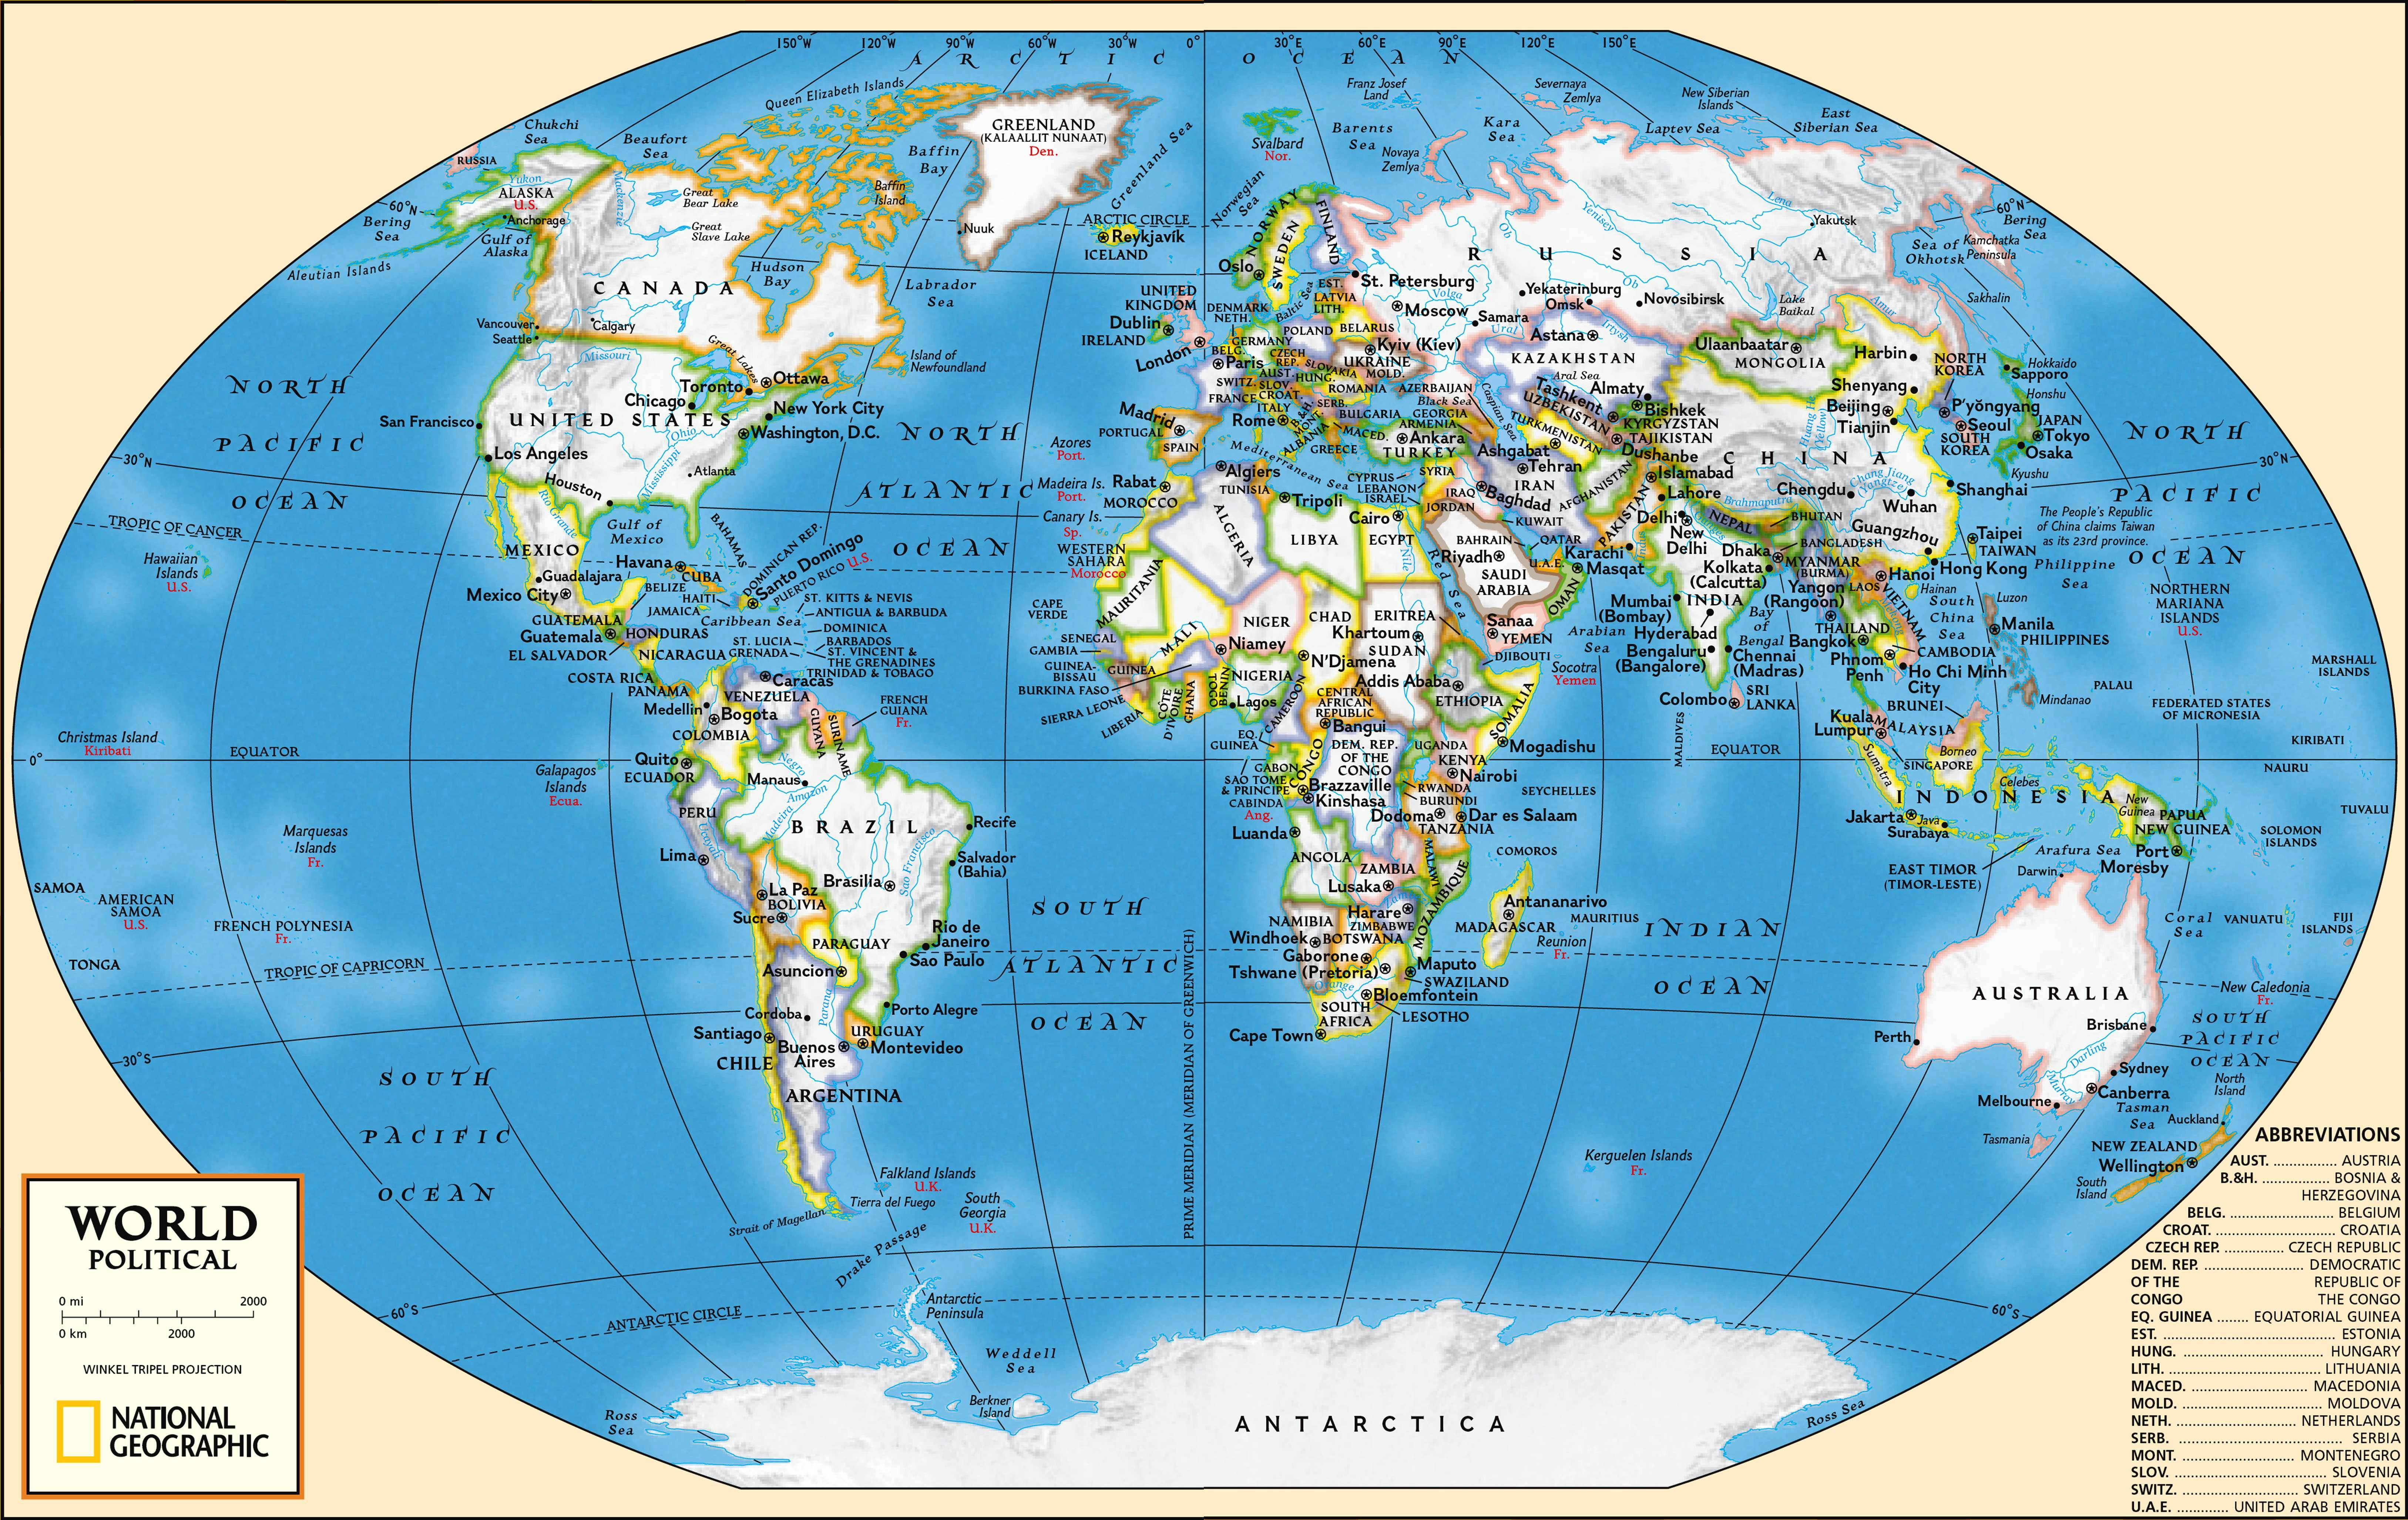 Detailed Map Of The World On MapsRFcom - The world map